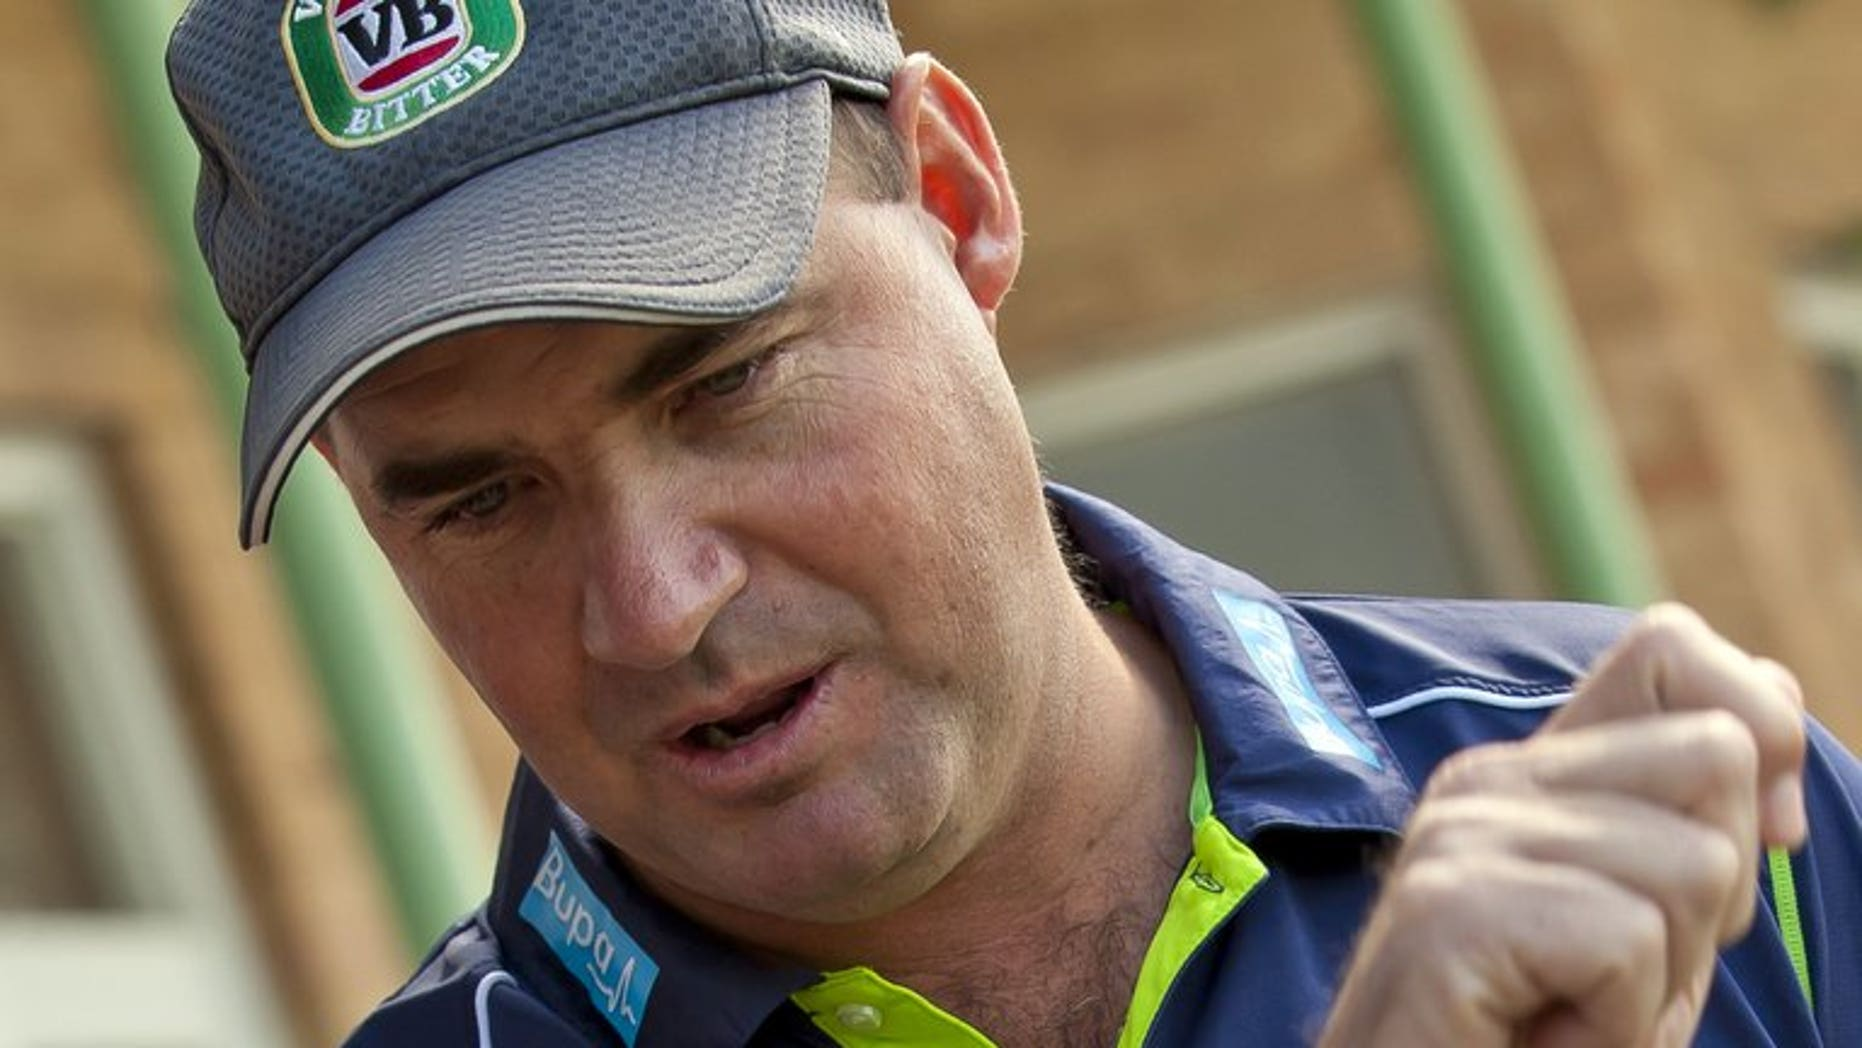 Former Australian national cricket coach Mickey Arthur is shown in Perth on March 26, 2013. Arthur has failed to reach a settlement with Cricket Australia over his abrupt sacking, but said he was confident a resolution will be found.